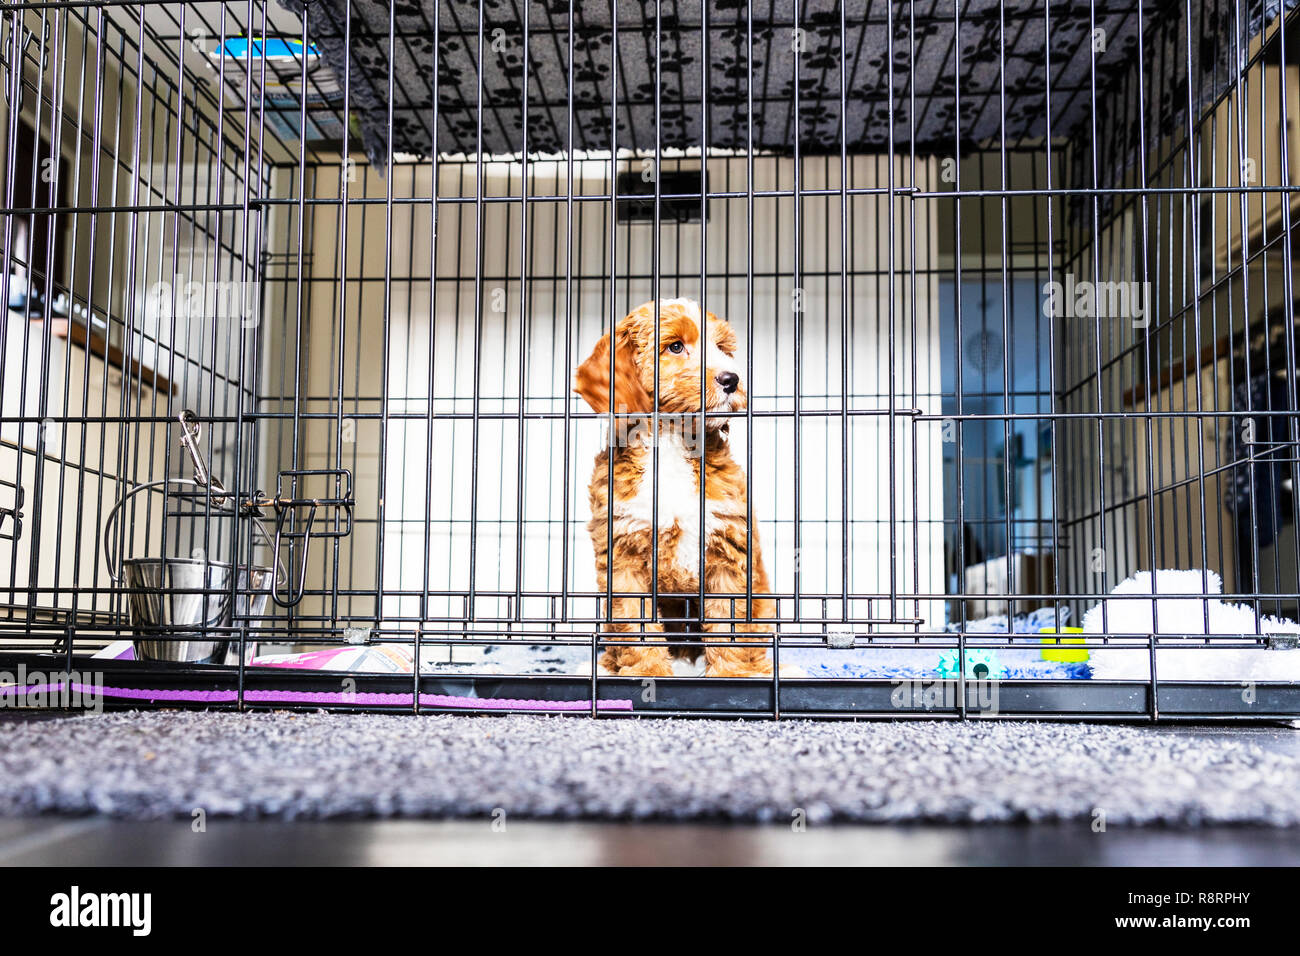 Dog in cage, puppy in cage, dog in crate, puppy in crate, puppy crate, dog crate, puppy cage, puppy crate, caged dog, puppy farm, puppy farming, dog Stock Photo